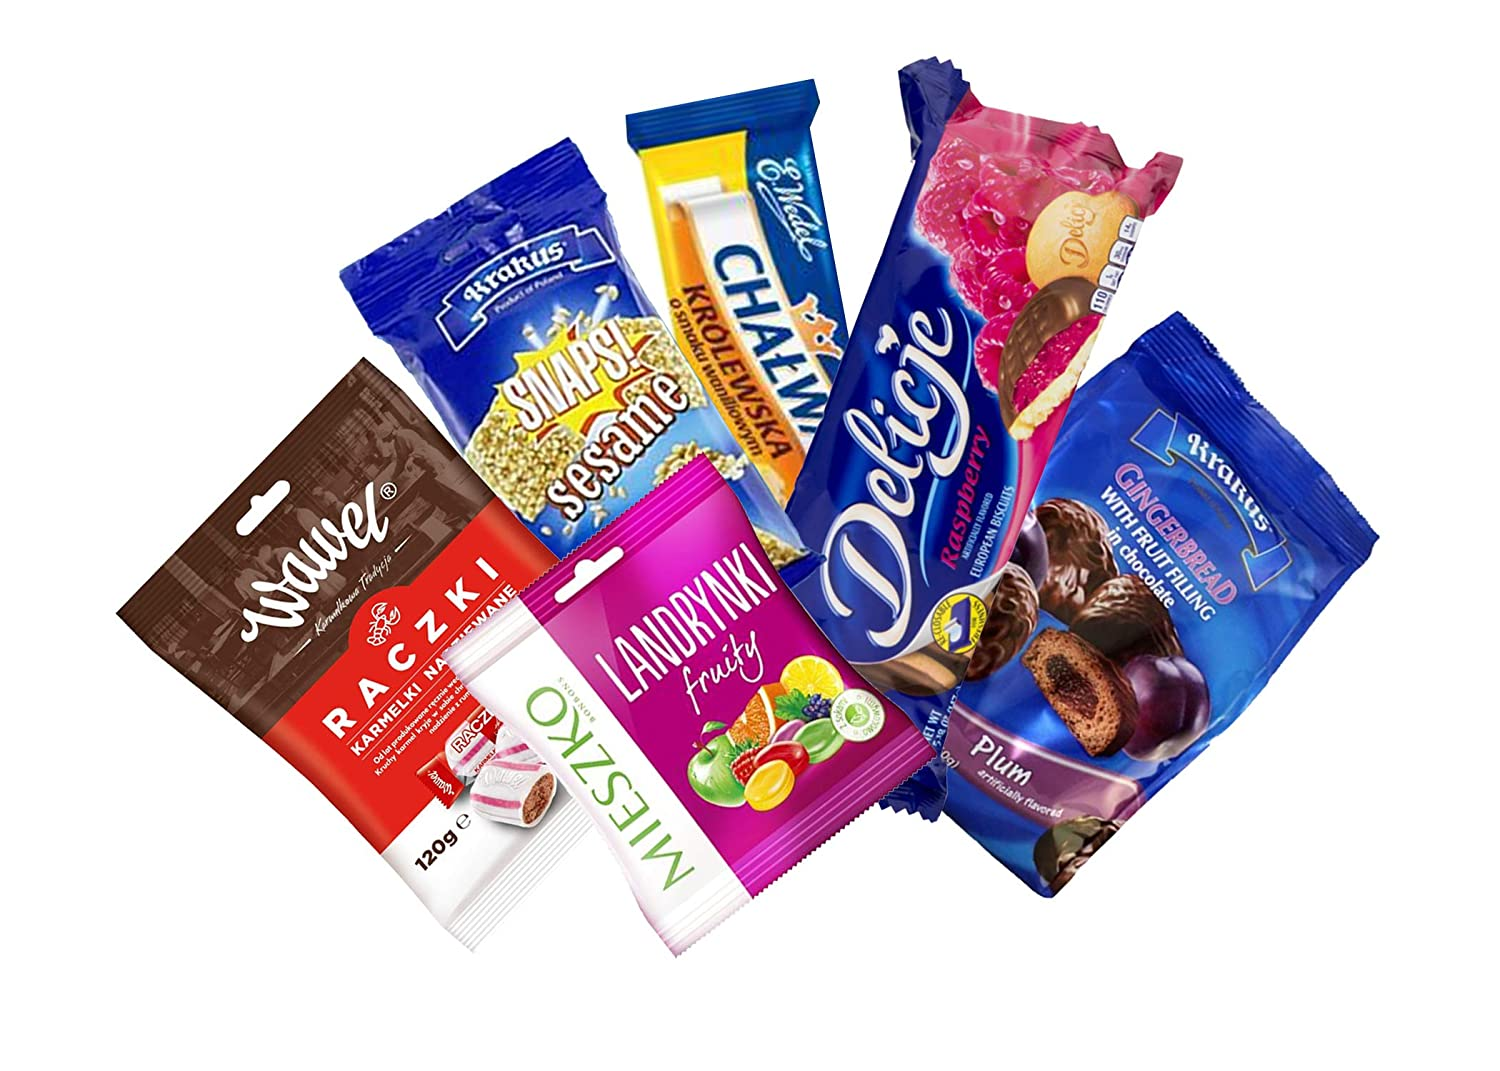 TASTE OF POLAND mini SWEET BOX Packing by Granda 2 lb TRADITIONAL POLISH SWEETS, 5 COUNT